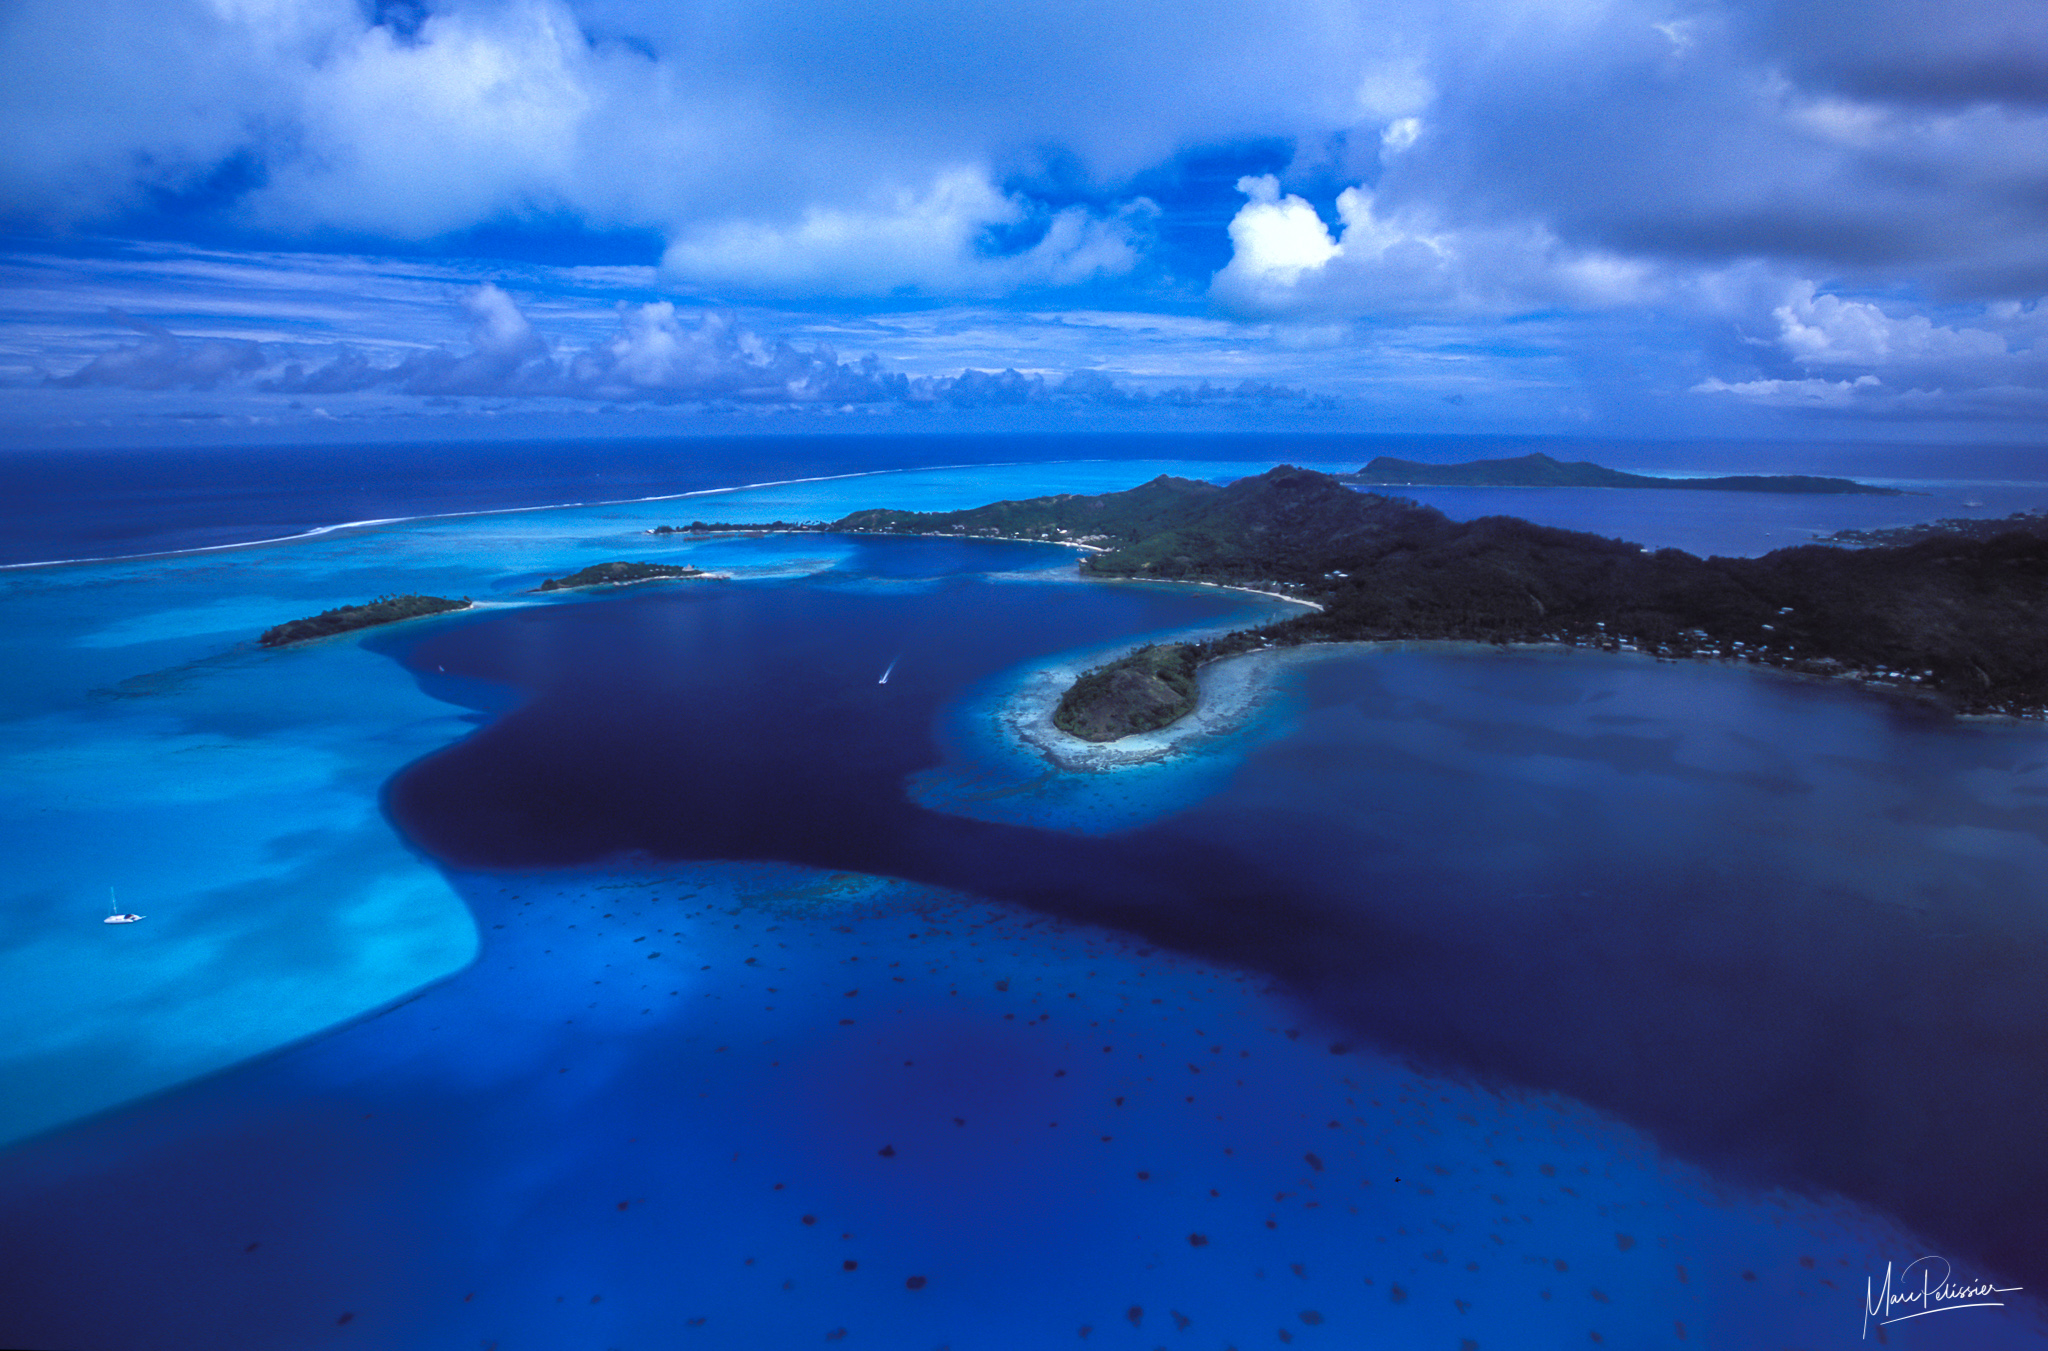 Surrounded by blue, French Polynesia